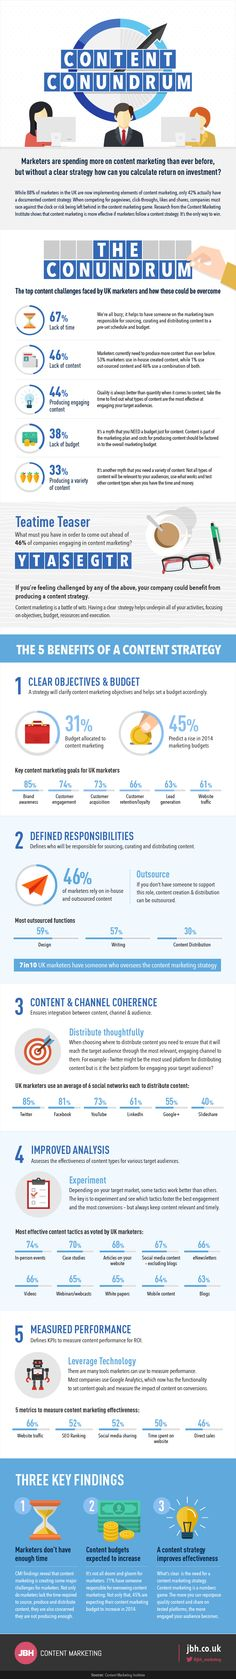 Content Conundrum about Content Marketing ROI #contentmarketing #infographic